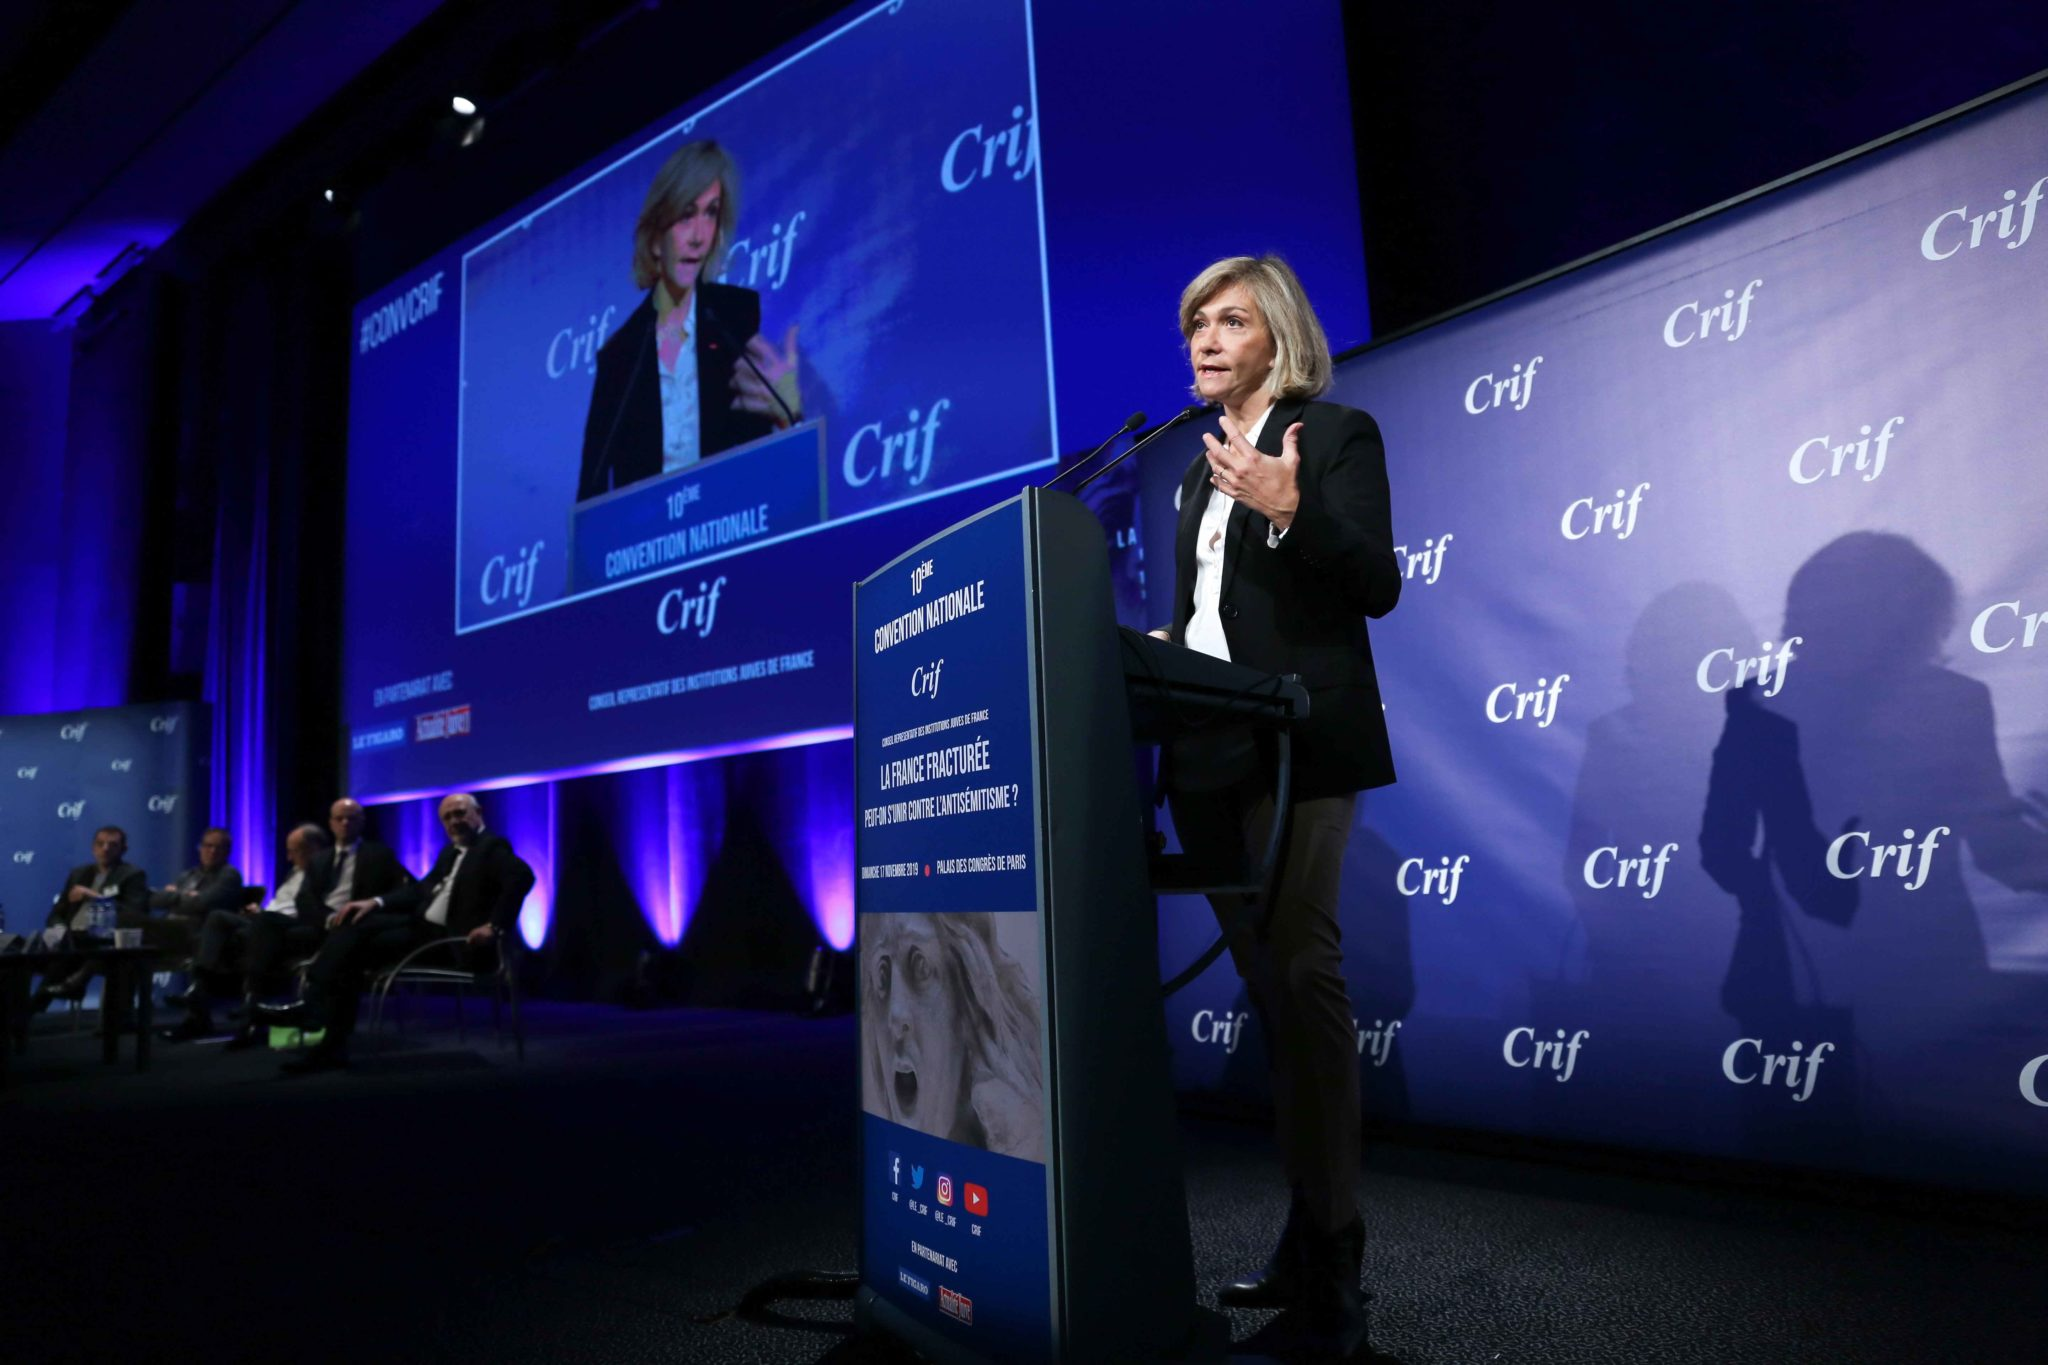 President of French Ile-de-France region Valérie Pécresse (C) takes part in the 10th national convention of the Representative Council of Jewish Institutions of France (CRIF - Conseil Representatif des Institutions juives de France) on November 17, 2019,